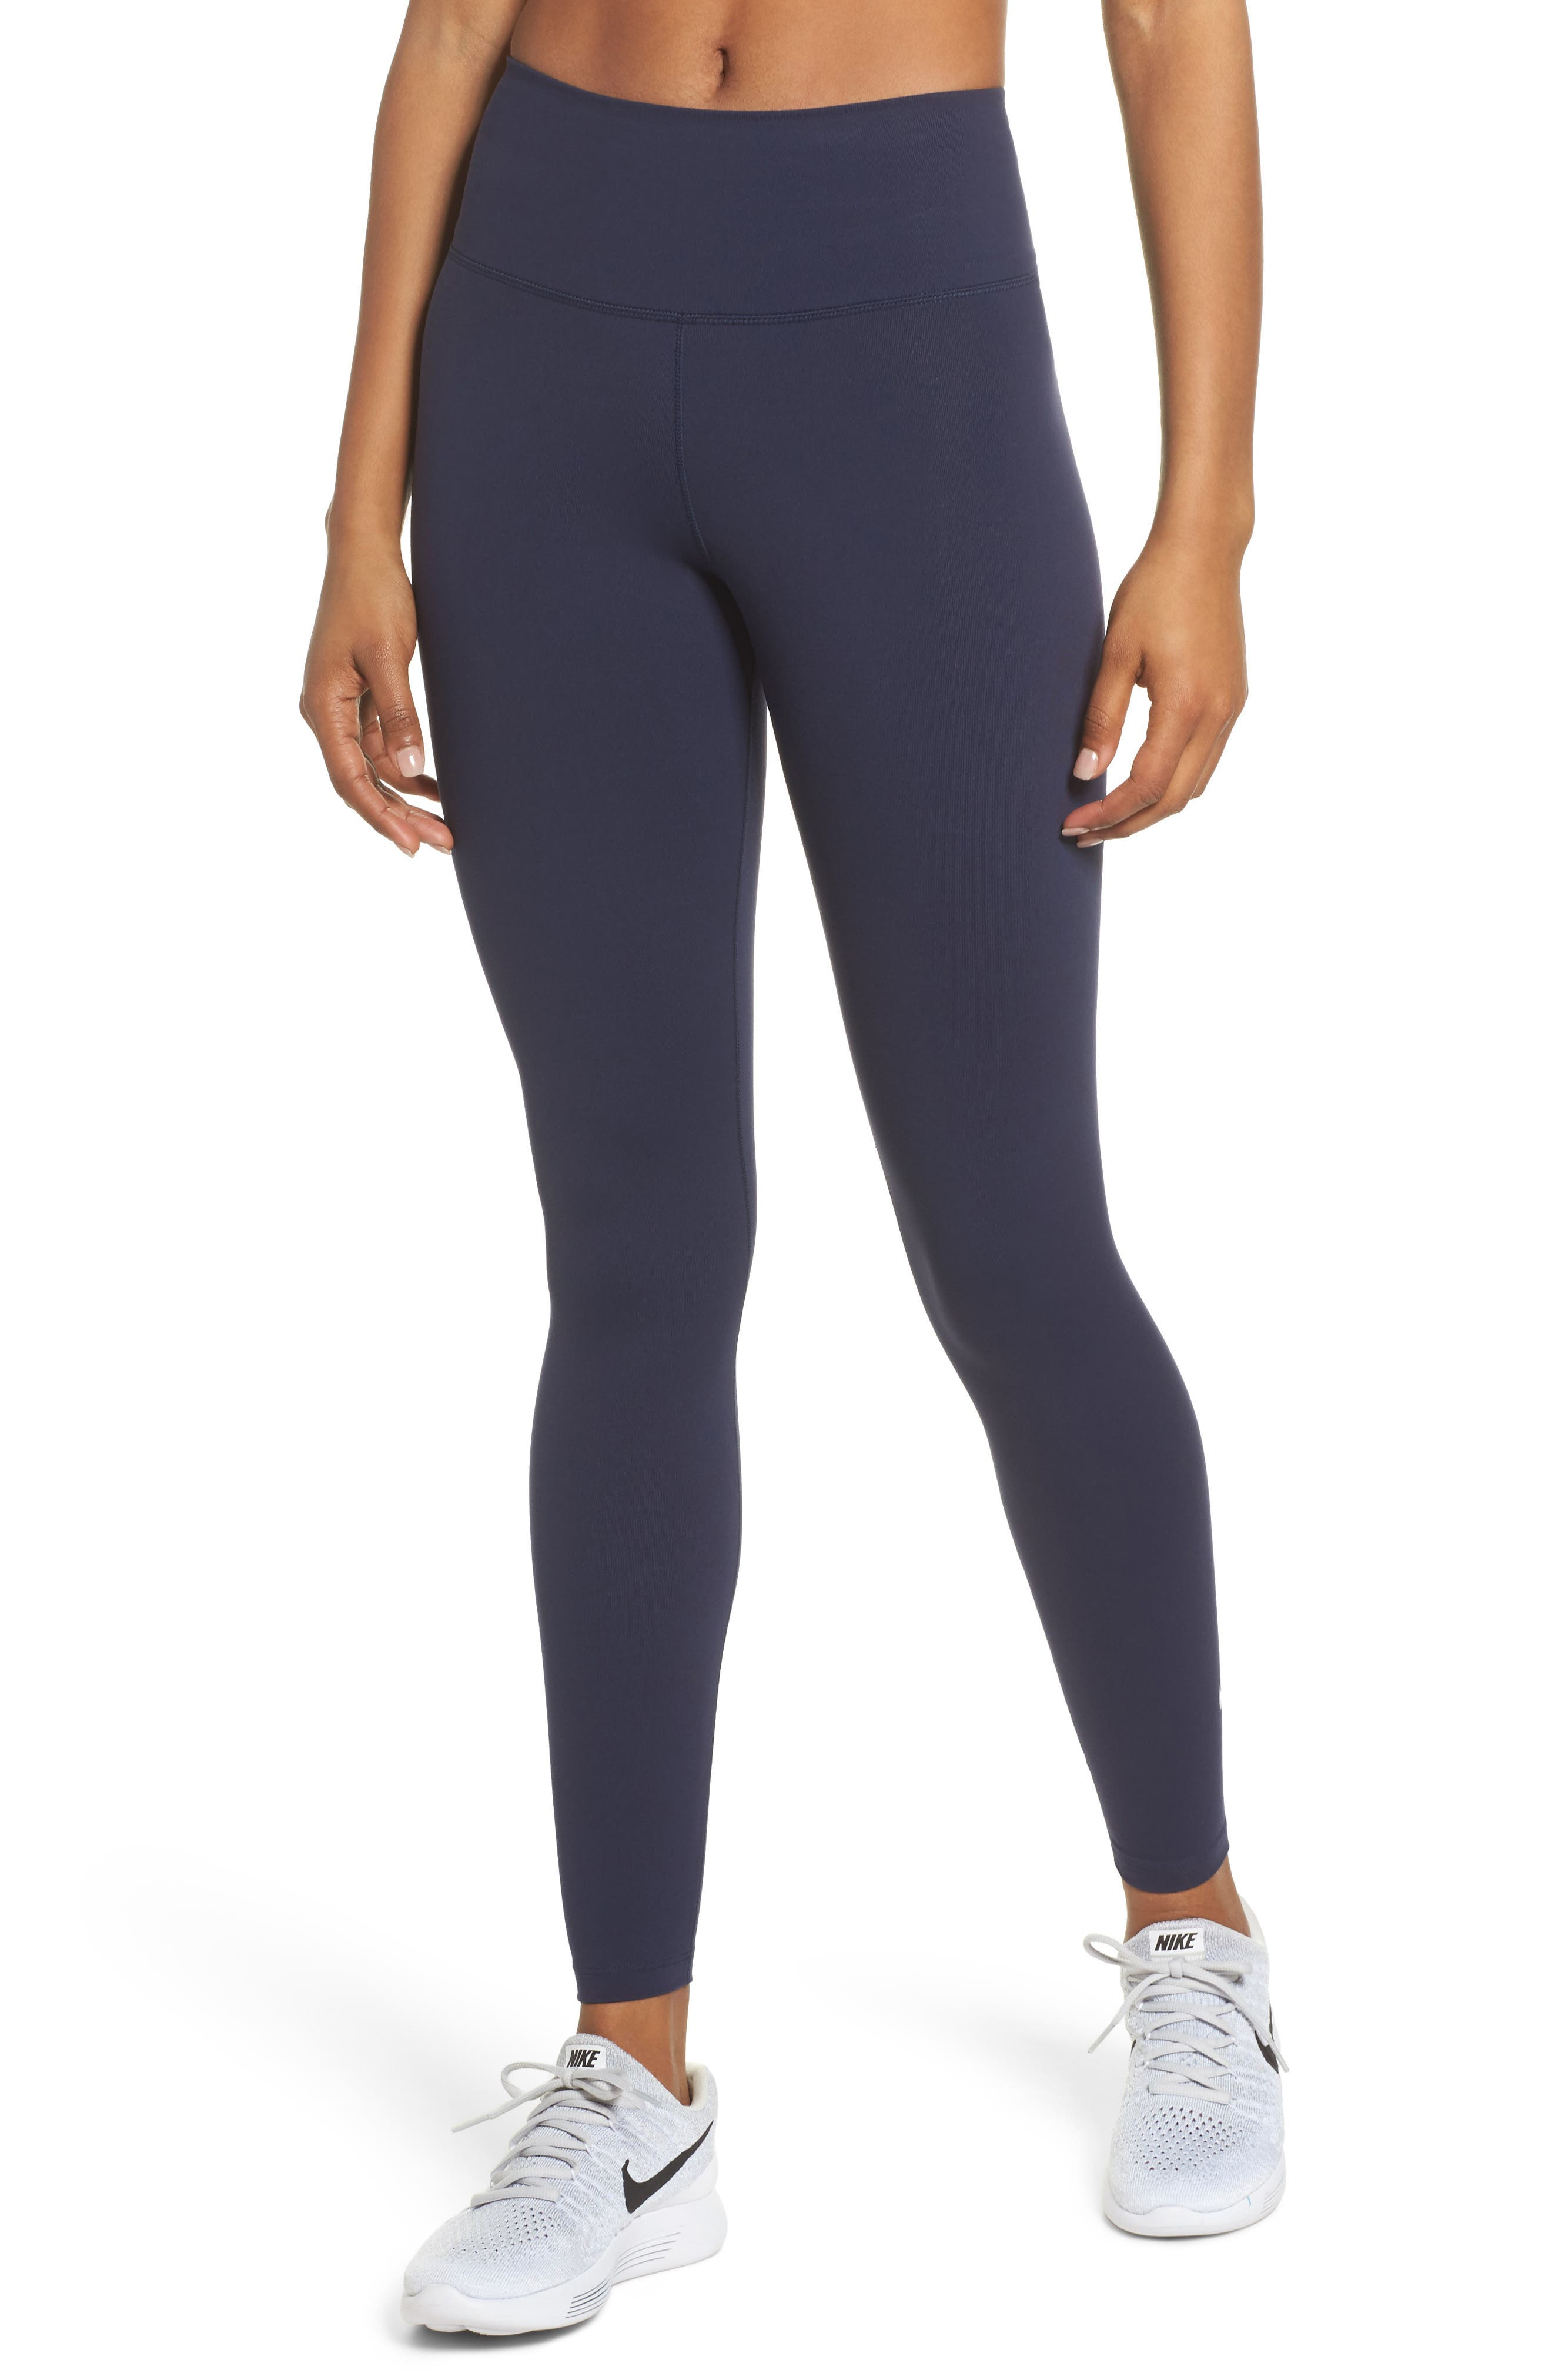 Main Image - Nike Sculpt Lux Training Tights